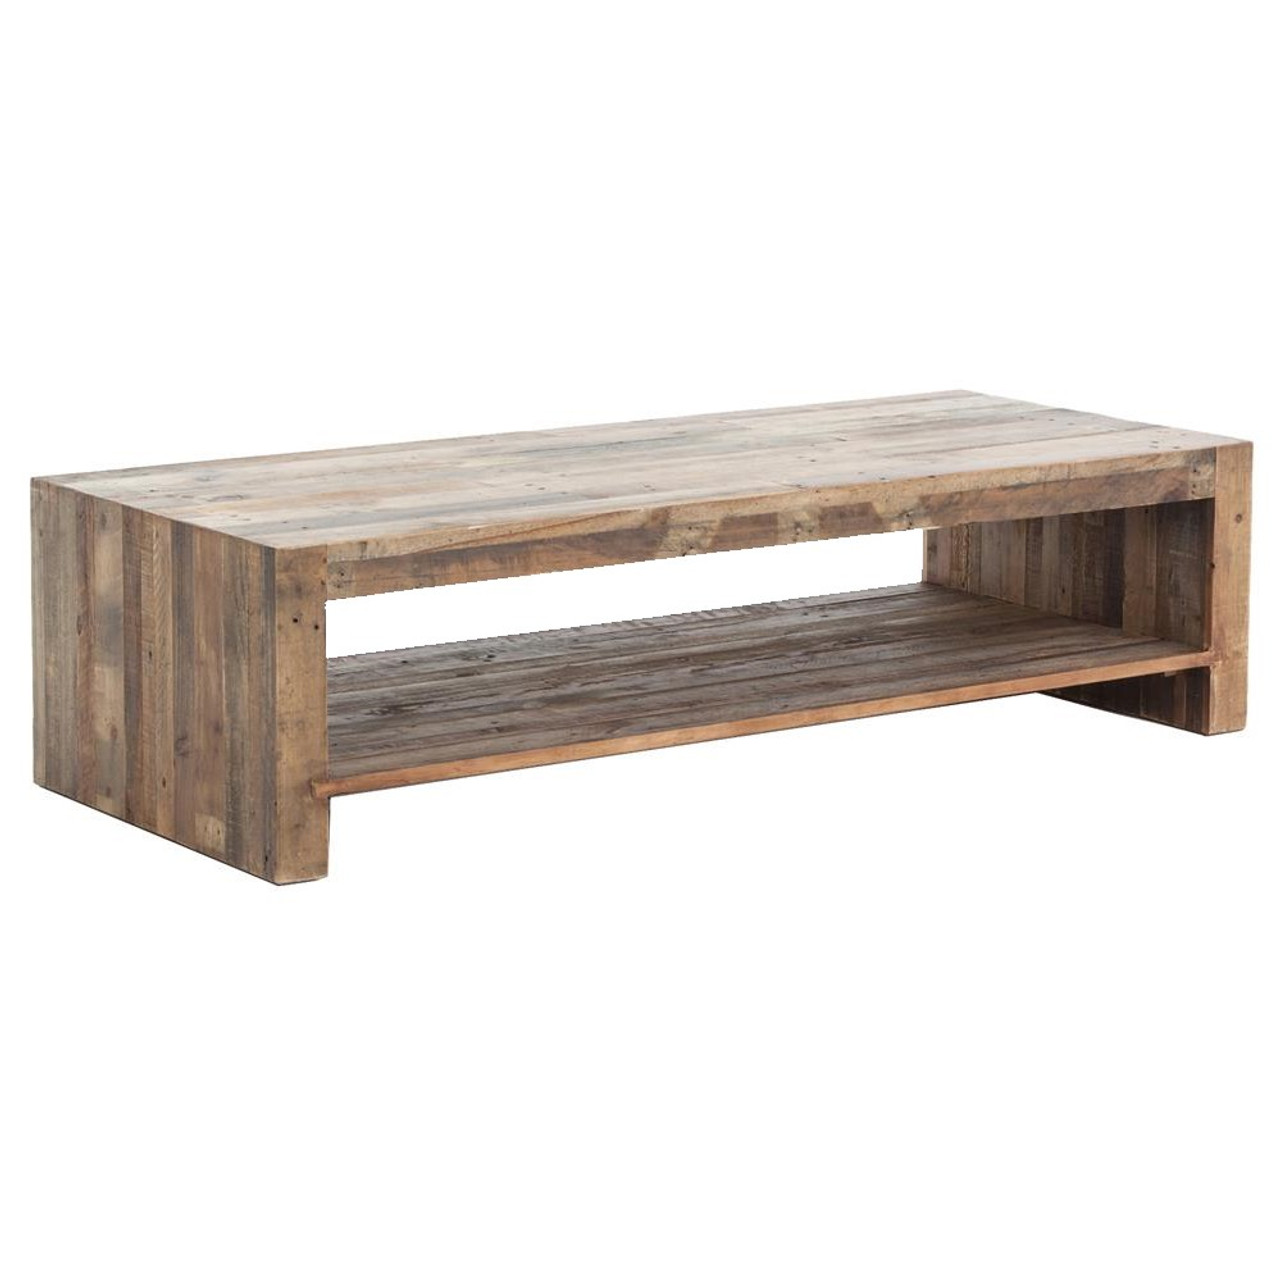 Modern Wood Coffee Table: Angora Rustic Modern Reclaimed Wood Coffee Table 60""